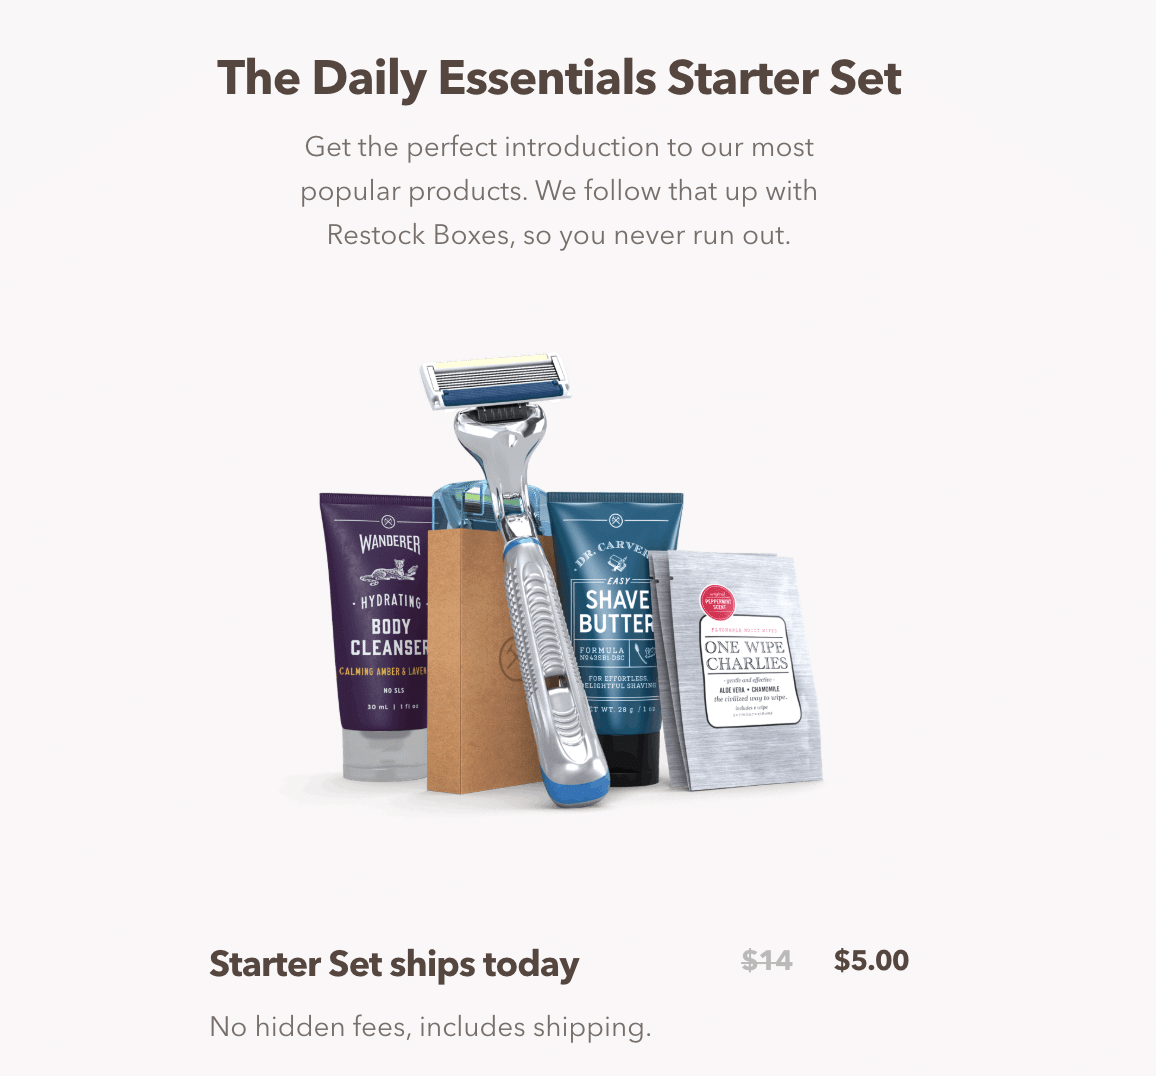 Dollar Shave Club's daily essentials starter kit offers a range of products for just five dollars.